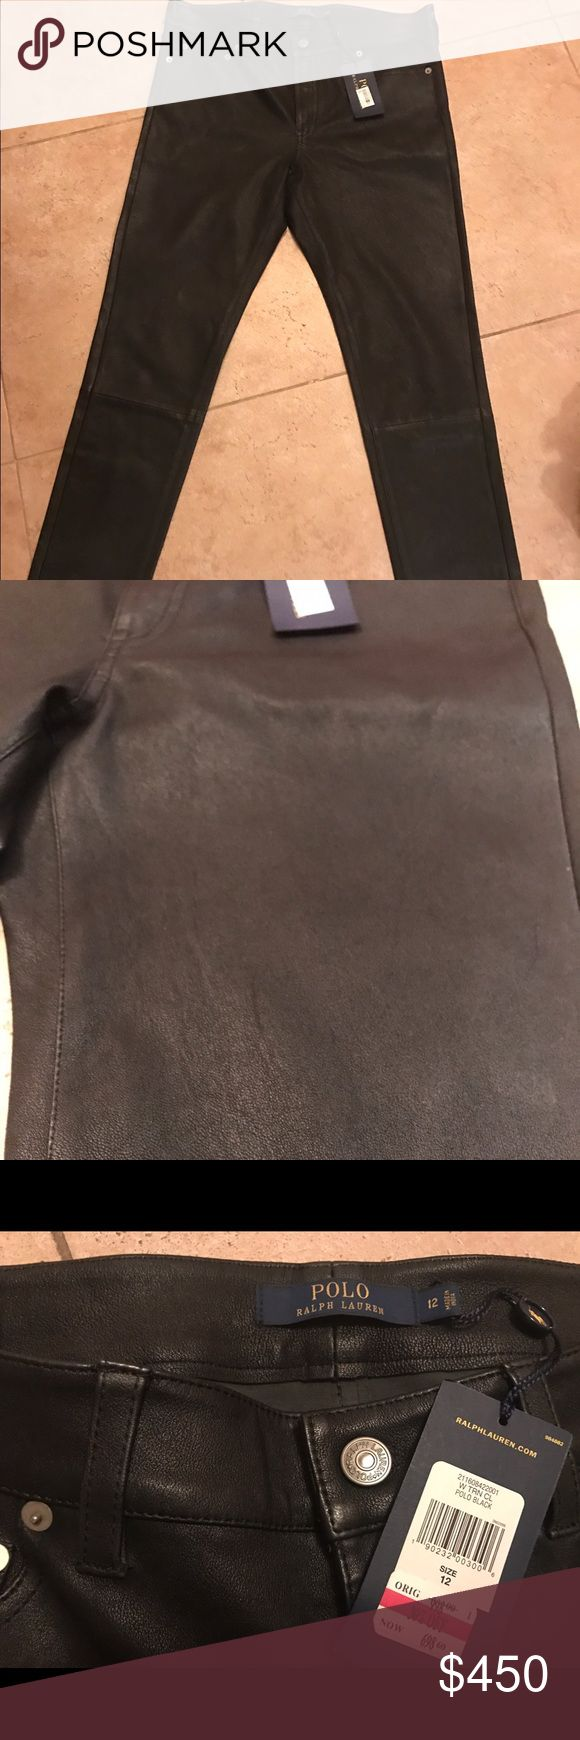 Reall leather polo Ralph Lauren pants size 12 Brand new never worn leather pants are the perfect gift for someone special. Tags are still on pants. Retail price $998. On tag you will see I purchased them on sale for 698. Polo by Ralph Lauren Pants Straight Leg